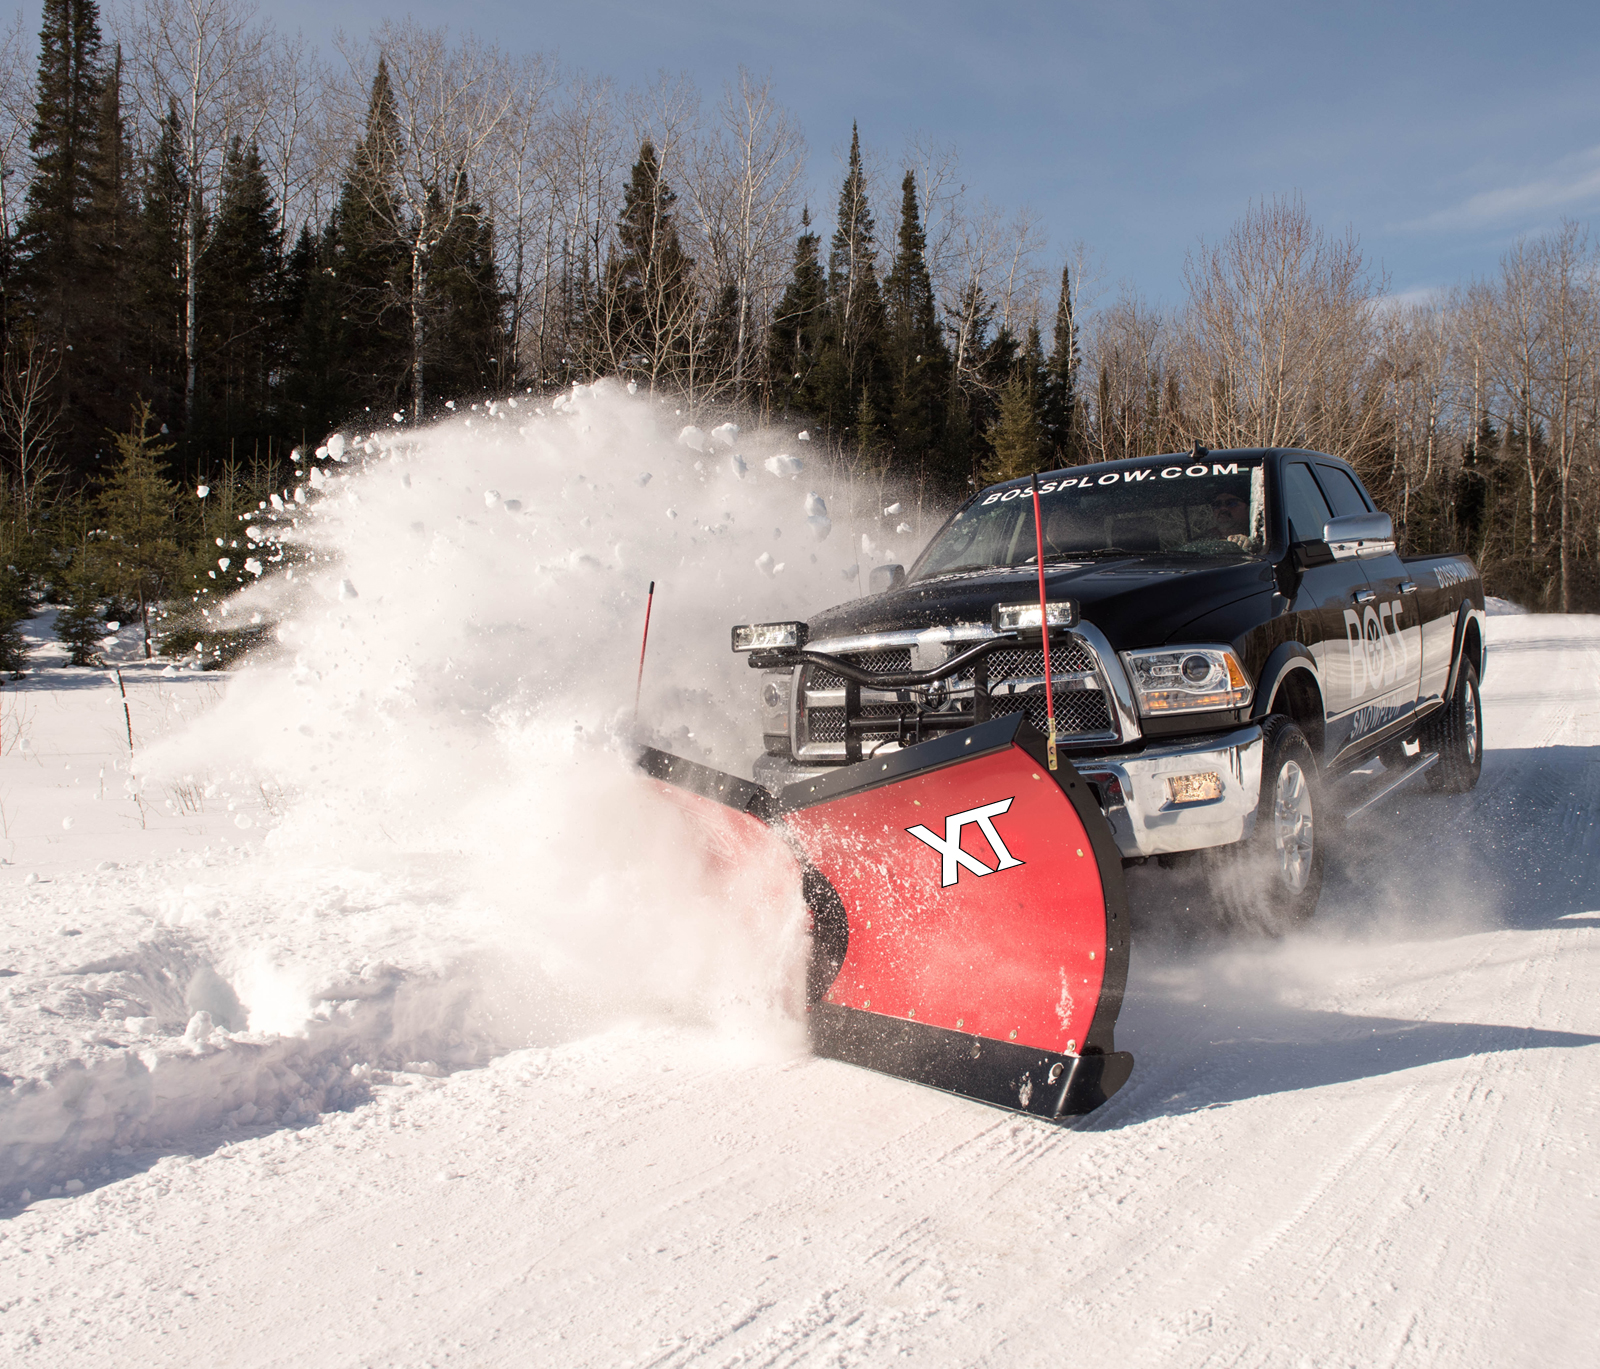 XT_Action.ashx?mw=700&mh=599&hash=0E22B9675E8983970942B8C06745E03C60E4184B boss snowplow v plow, truck plows, poly plow, boss power v xt Boss Snow Plow Solenoid Diagram at readyjetset.co